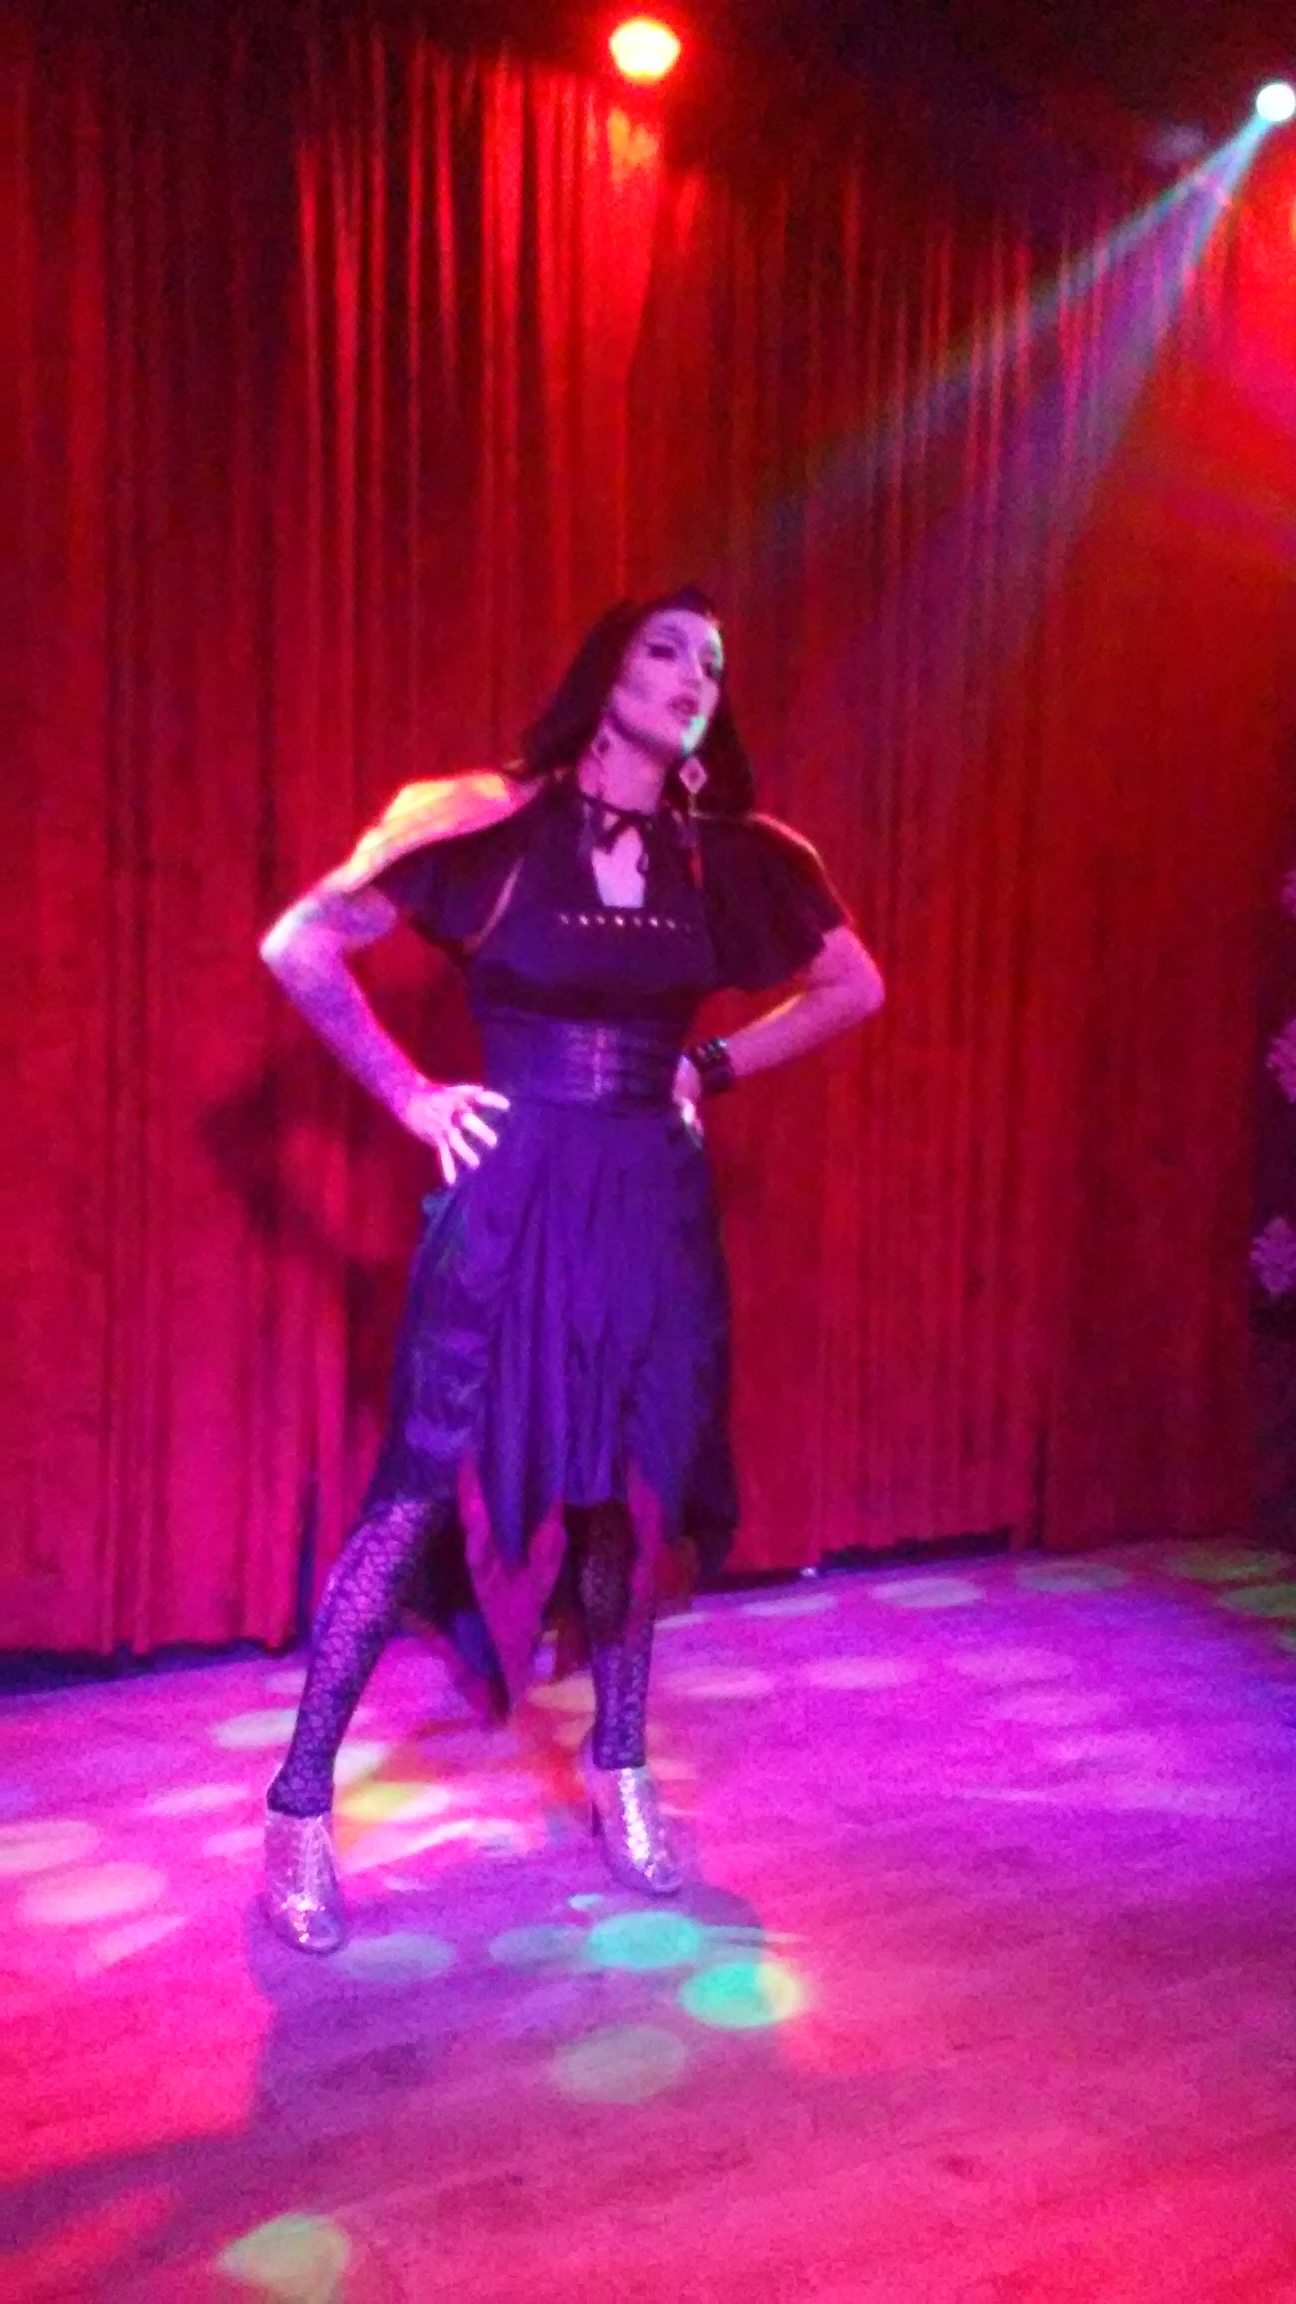 Dragshow 20151121 DungeonsDragQueens 04